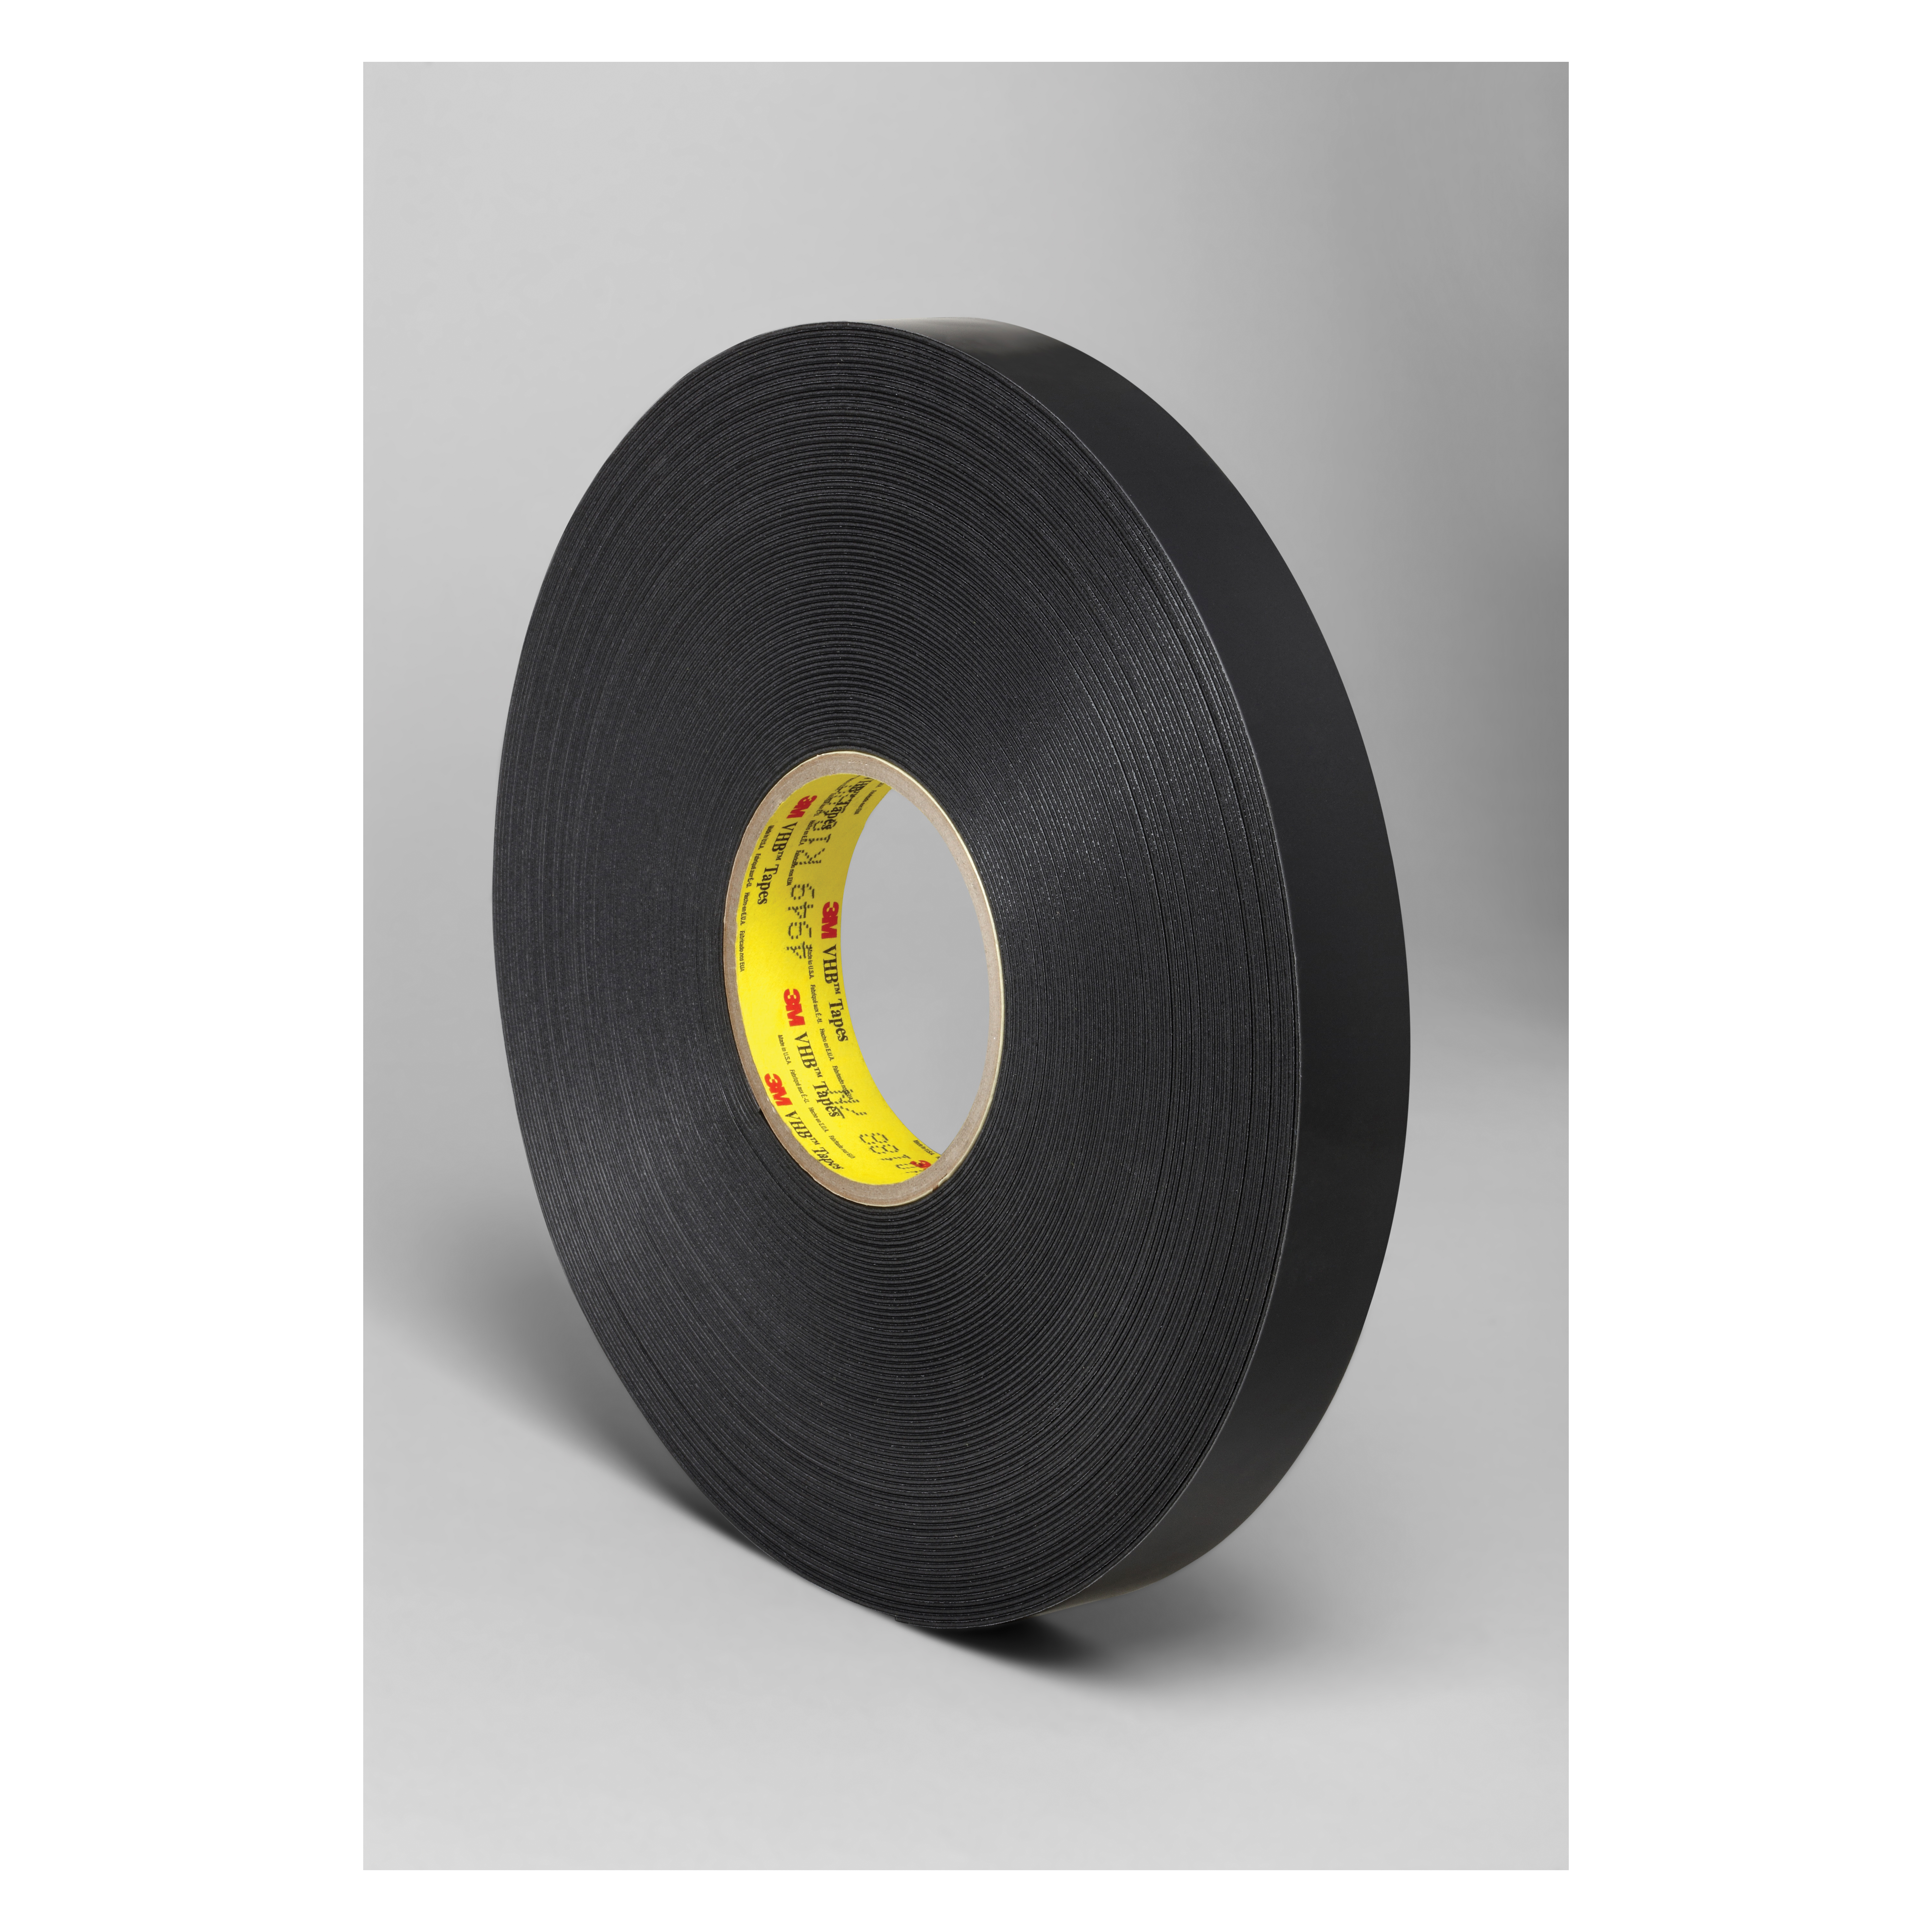 3M™ VHB™ 021200-64645 High Strength Double Sided Bonding Tape, 36 yd L x 1 in W, 0.045 in THK, General Purpose Acrylic Adhesive, Acrylic Foam Backing, Black